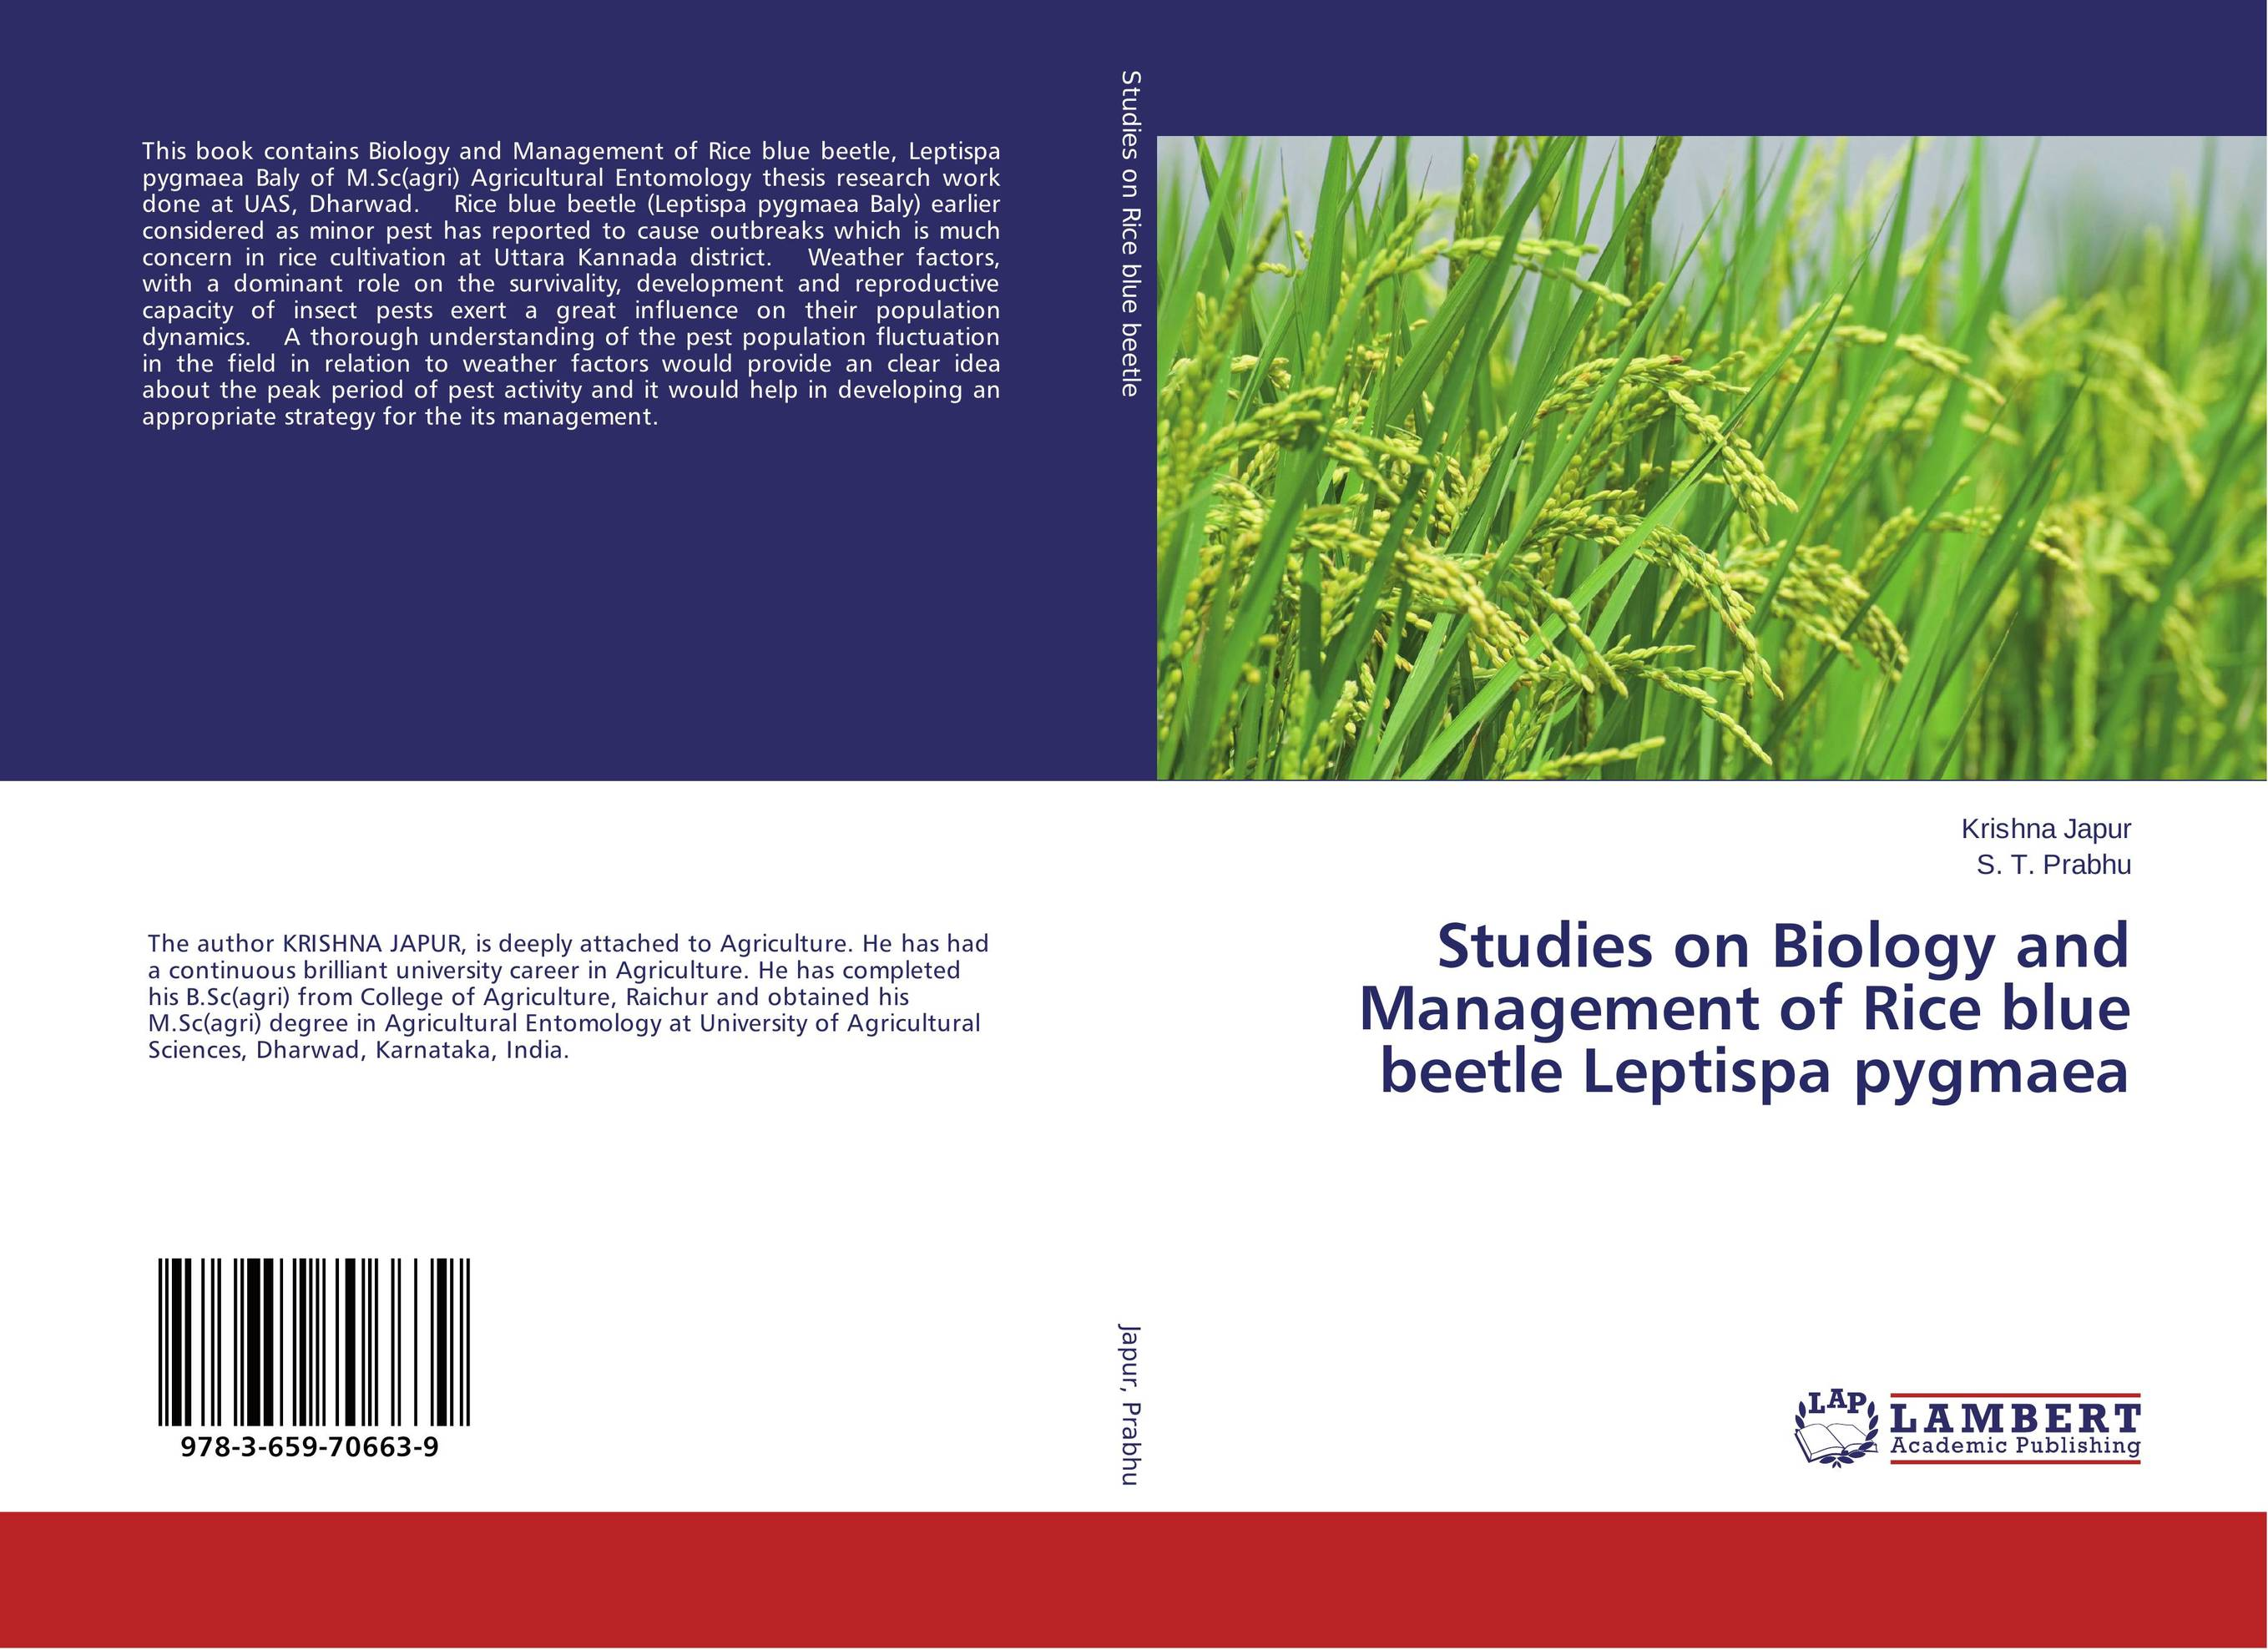 Studies on Biology and Management of Rice blue beetle Leptispa pygmaea alex kisingo impact of heathland management approaches on ground beetle communities